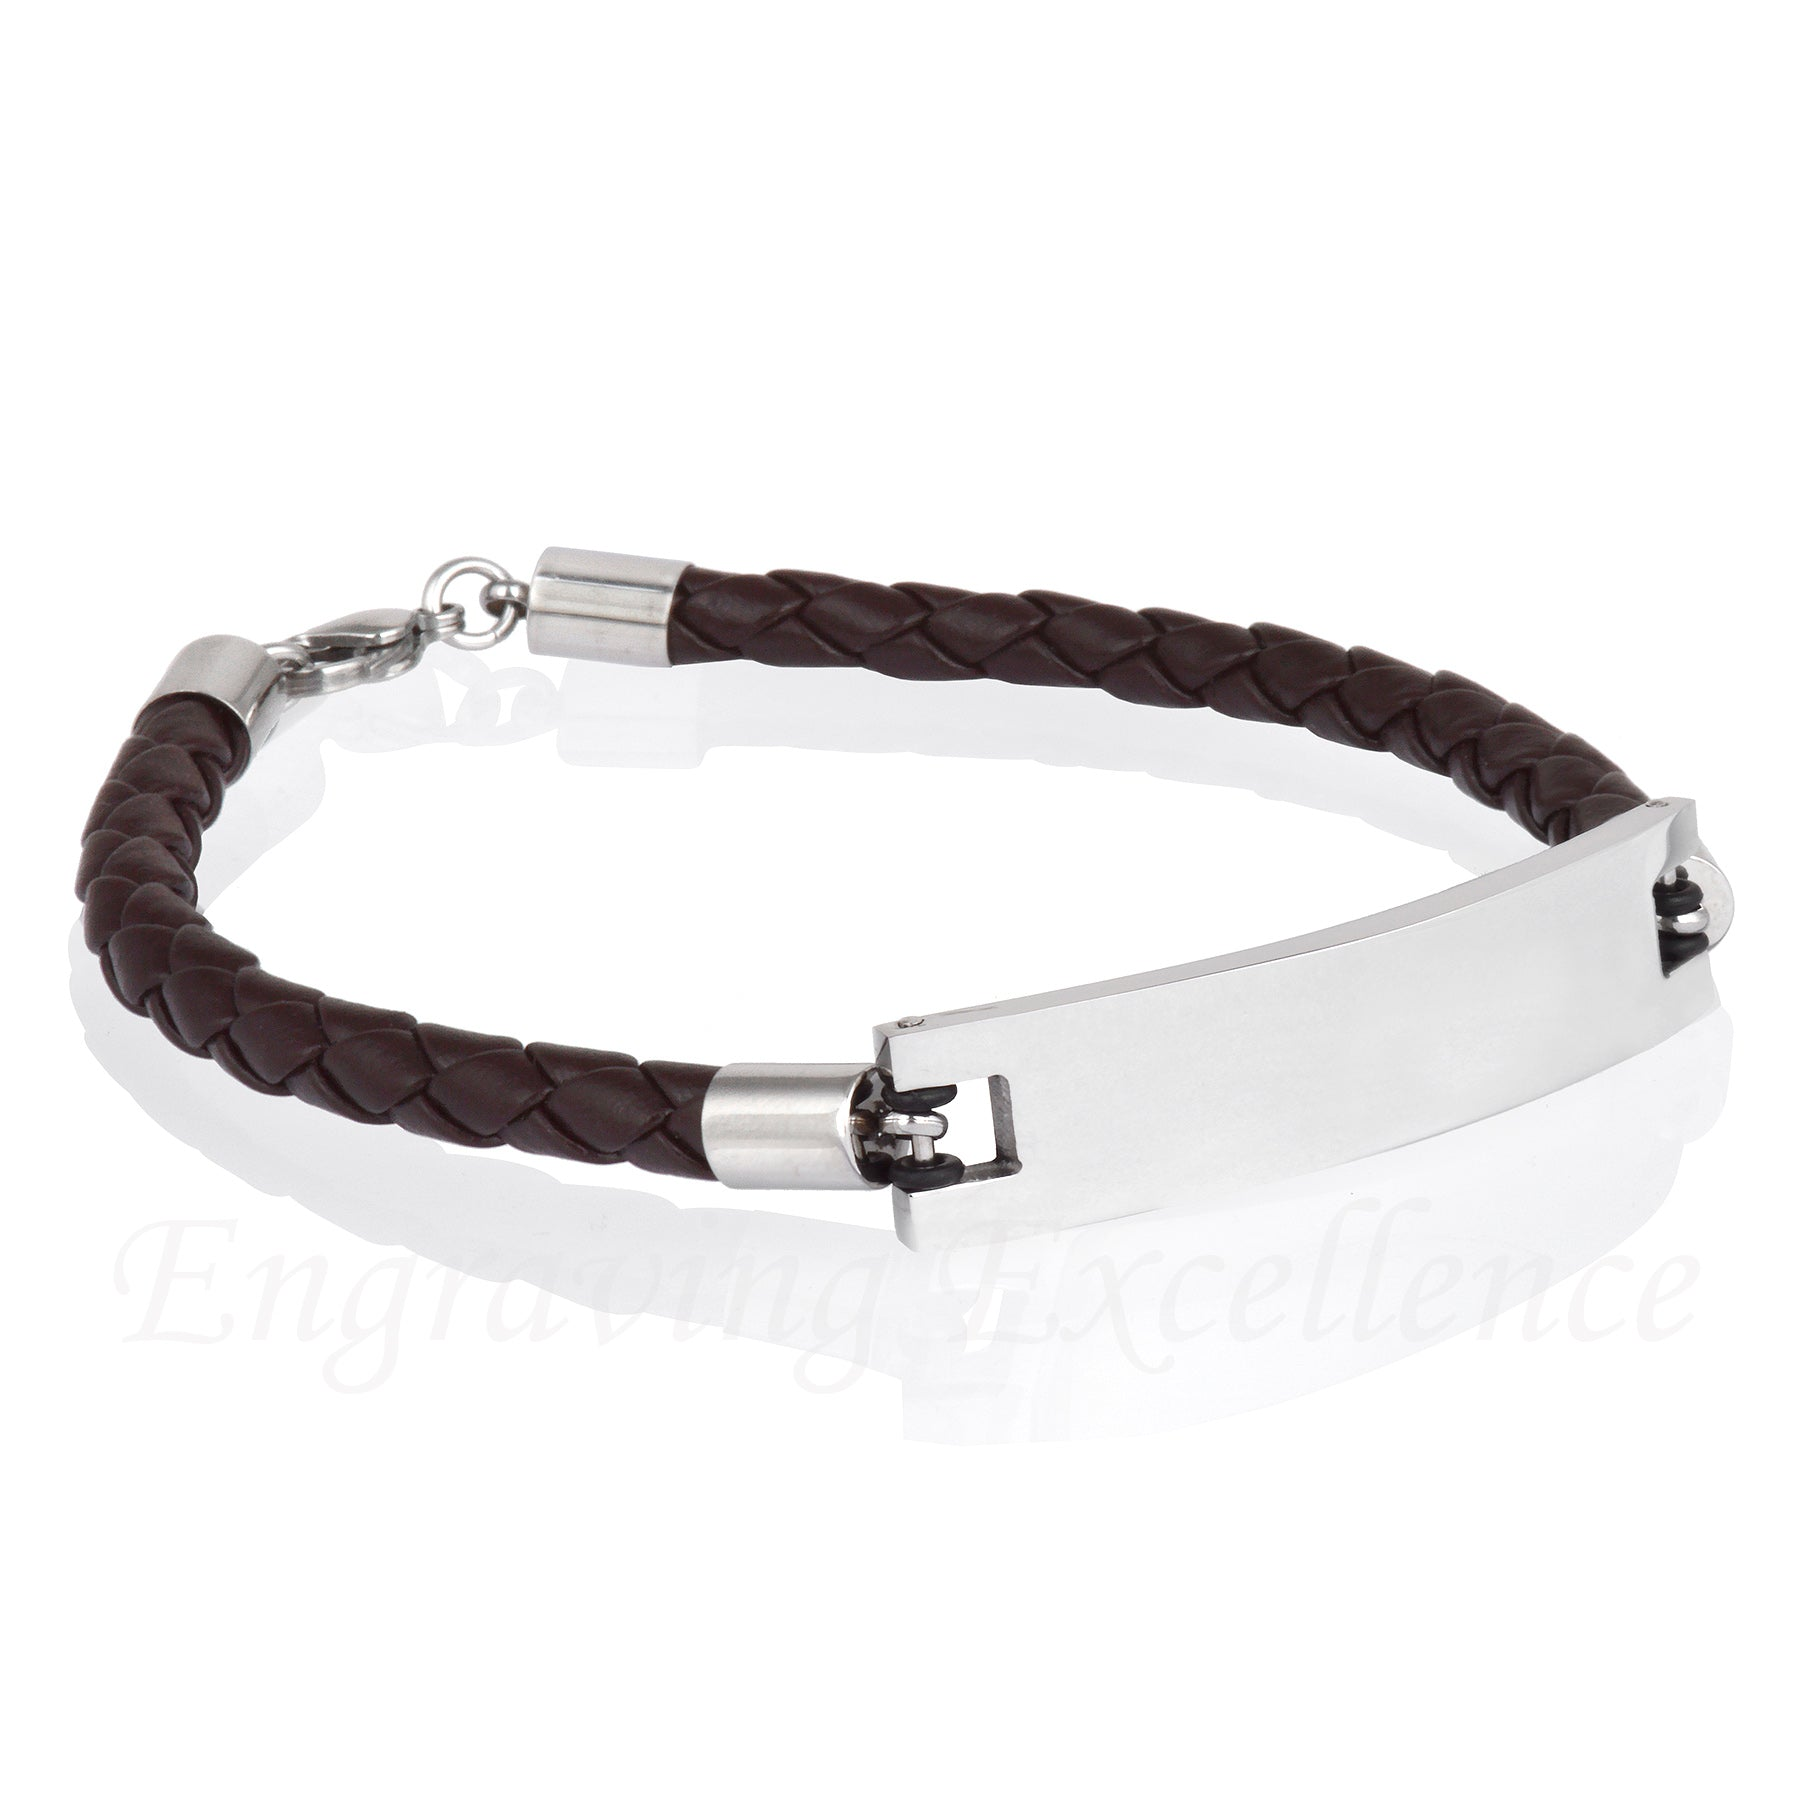 Men's Brown PU leather ID Tag Bracelet with Lobster clasp